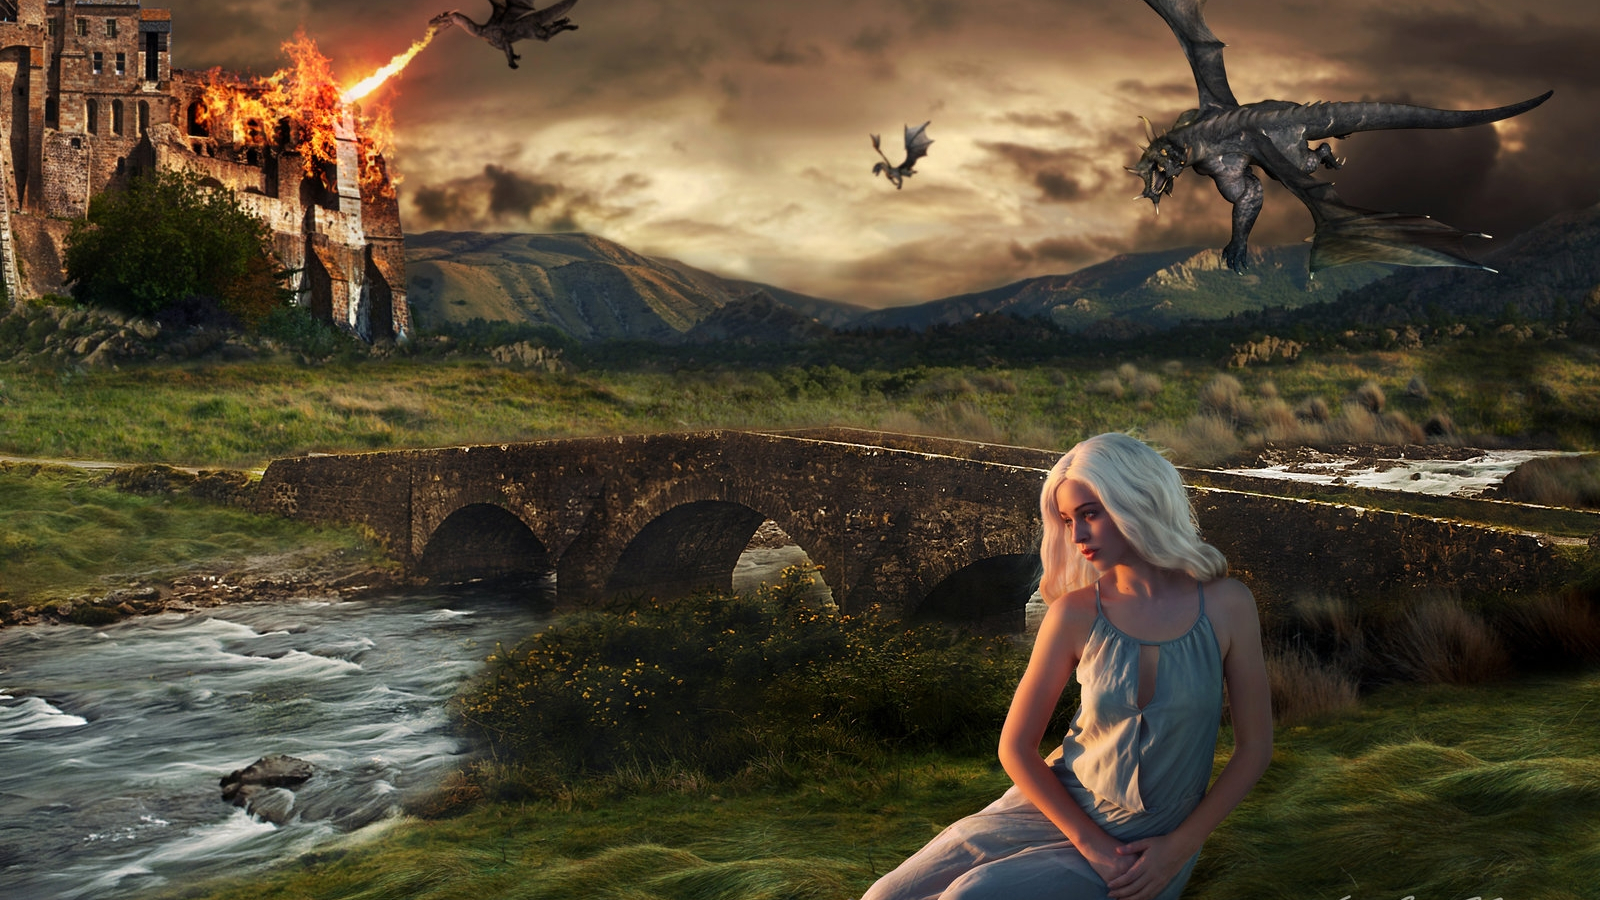 Free Download Daenerys And Her Dragons Game Of Thrones Wallpaper